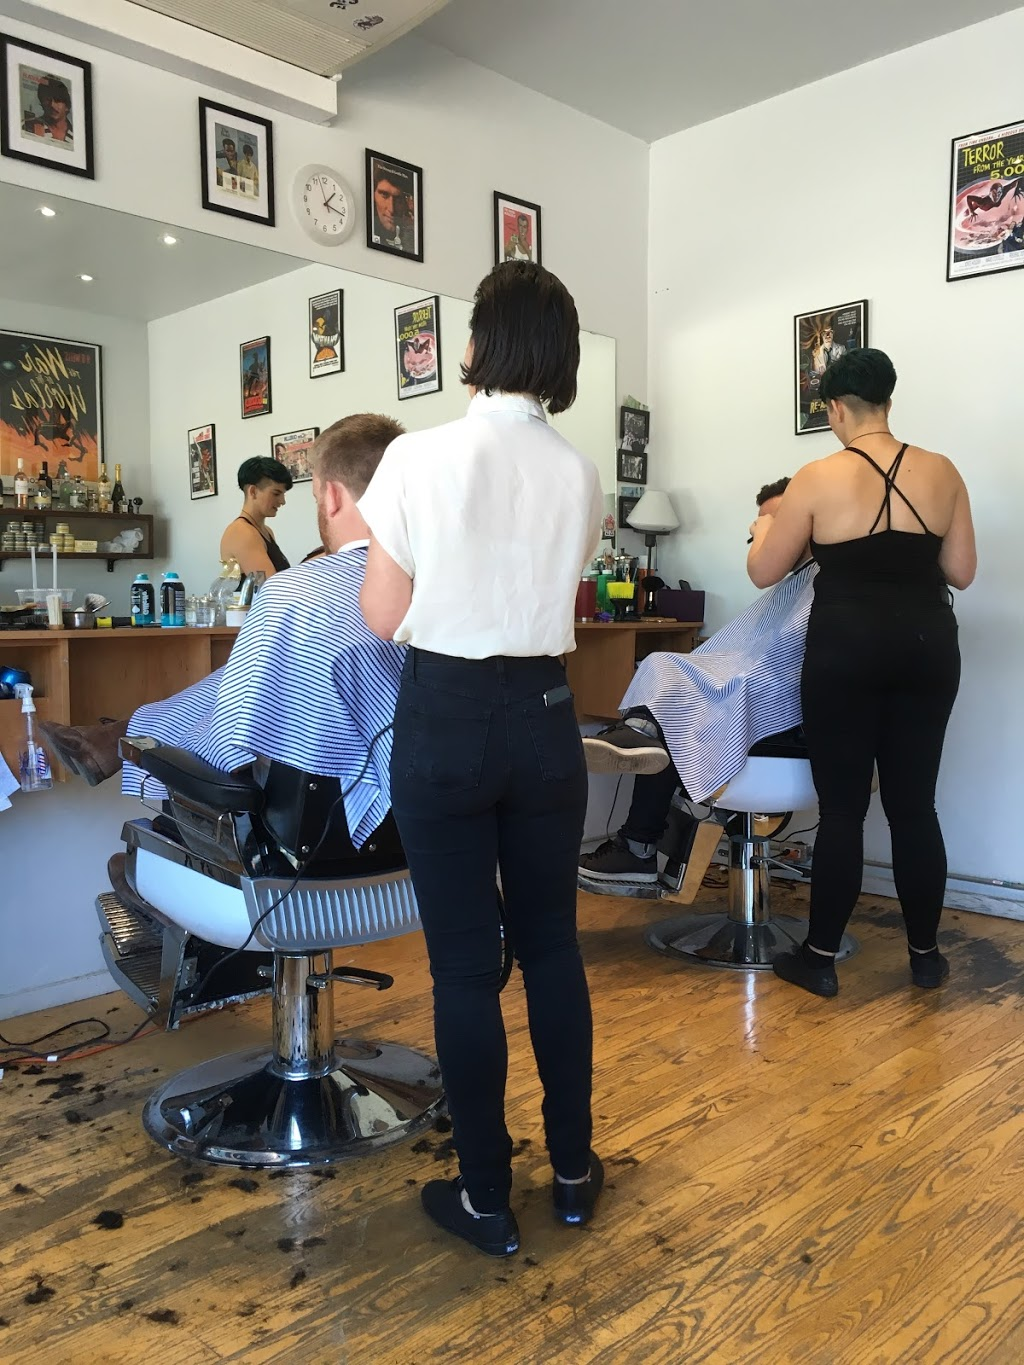 Comrades Barbershop | hair care | 209 Harbord St, Toronto, ON M5S 1H6, Canada | 4163177059 OR +1 416-317-7059